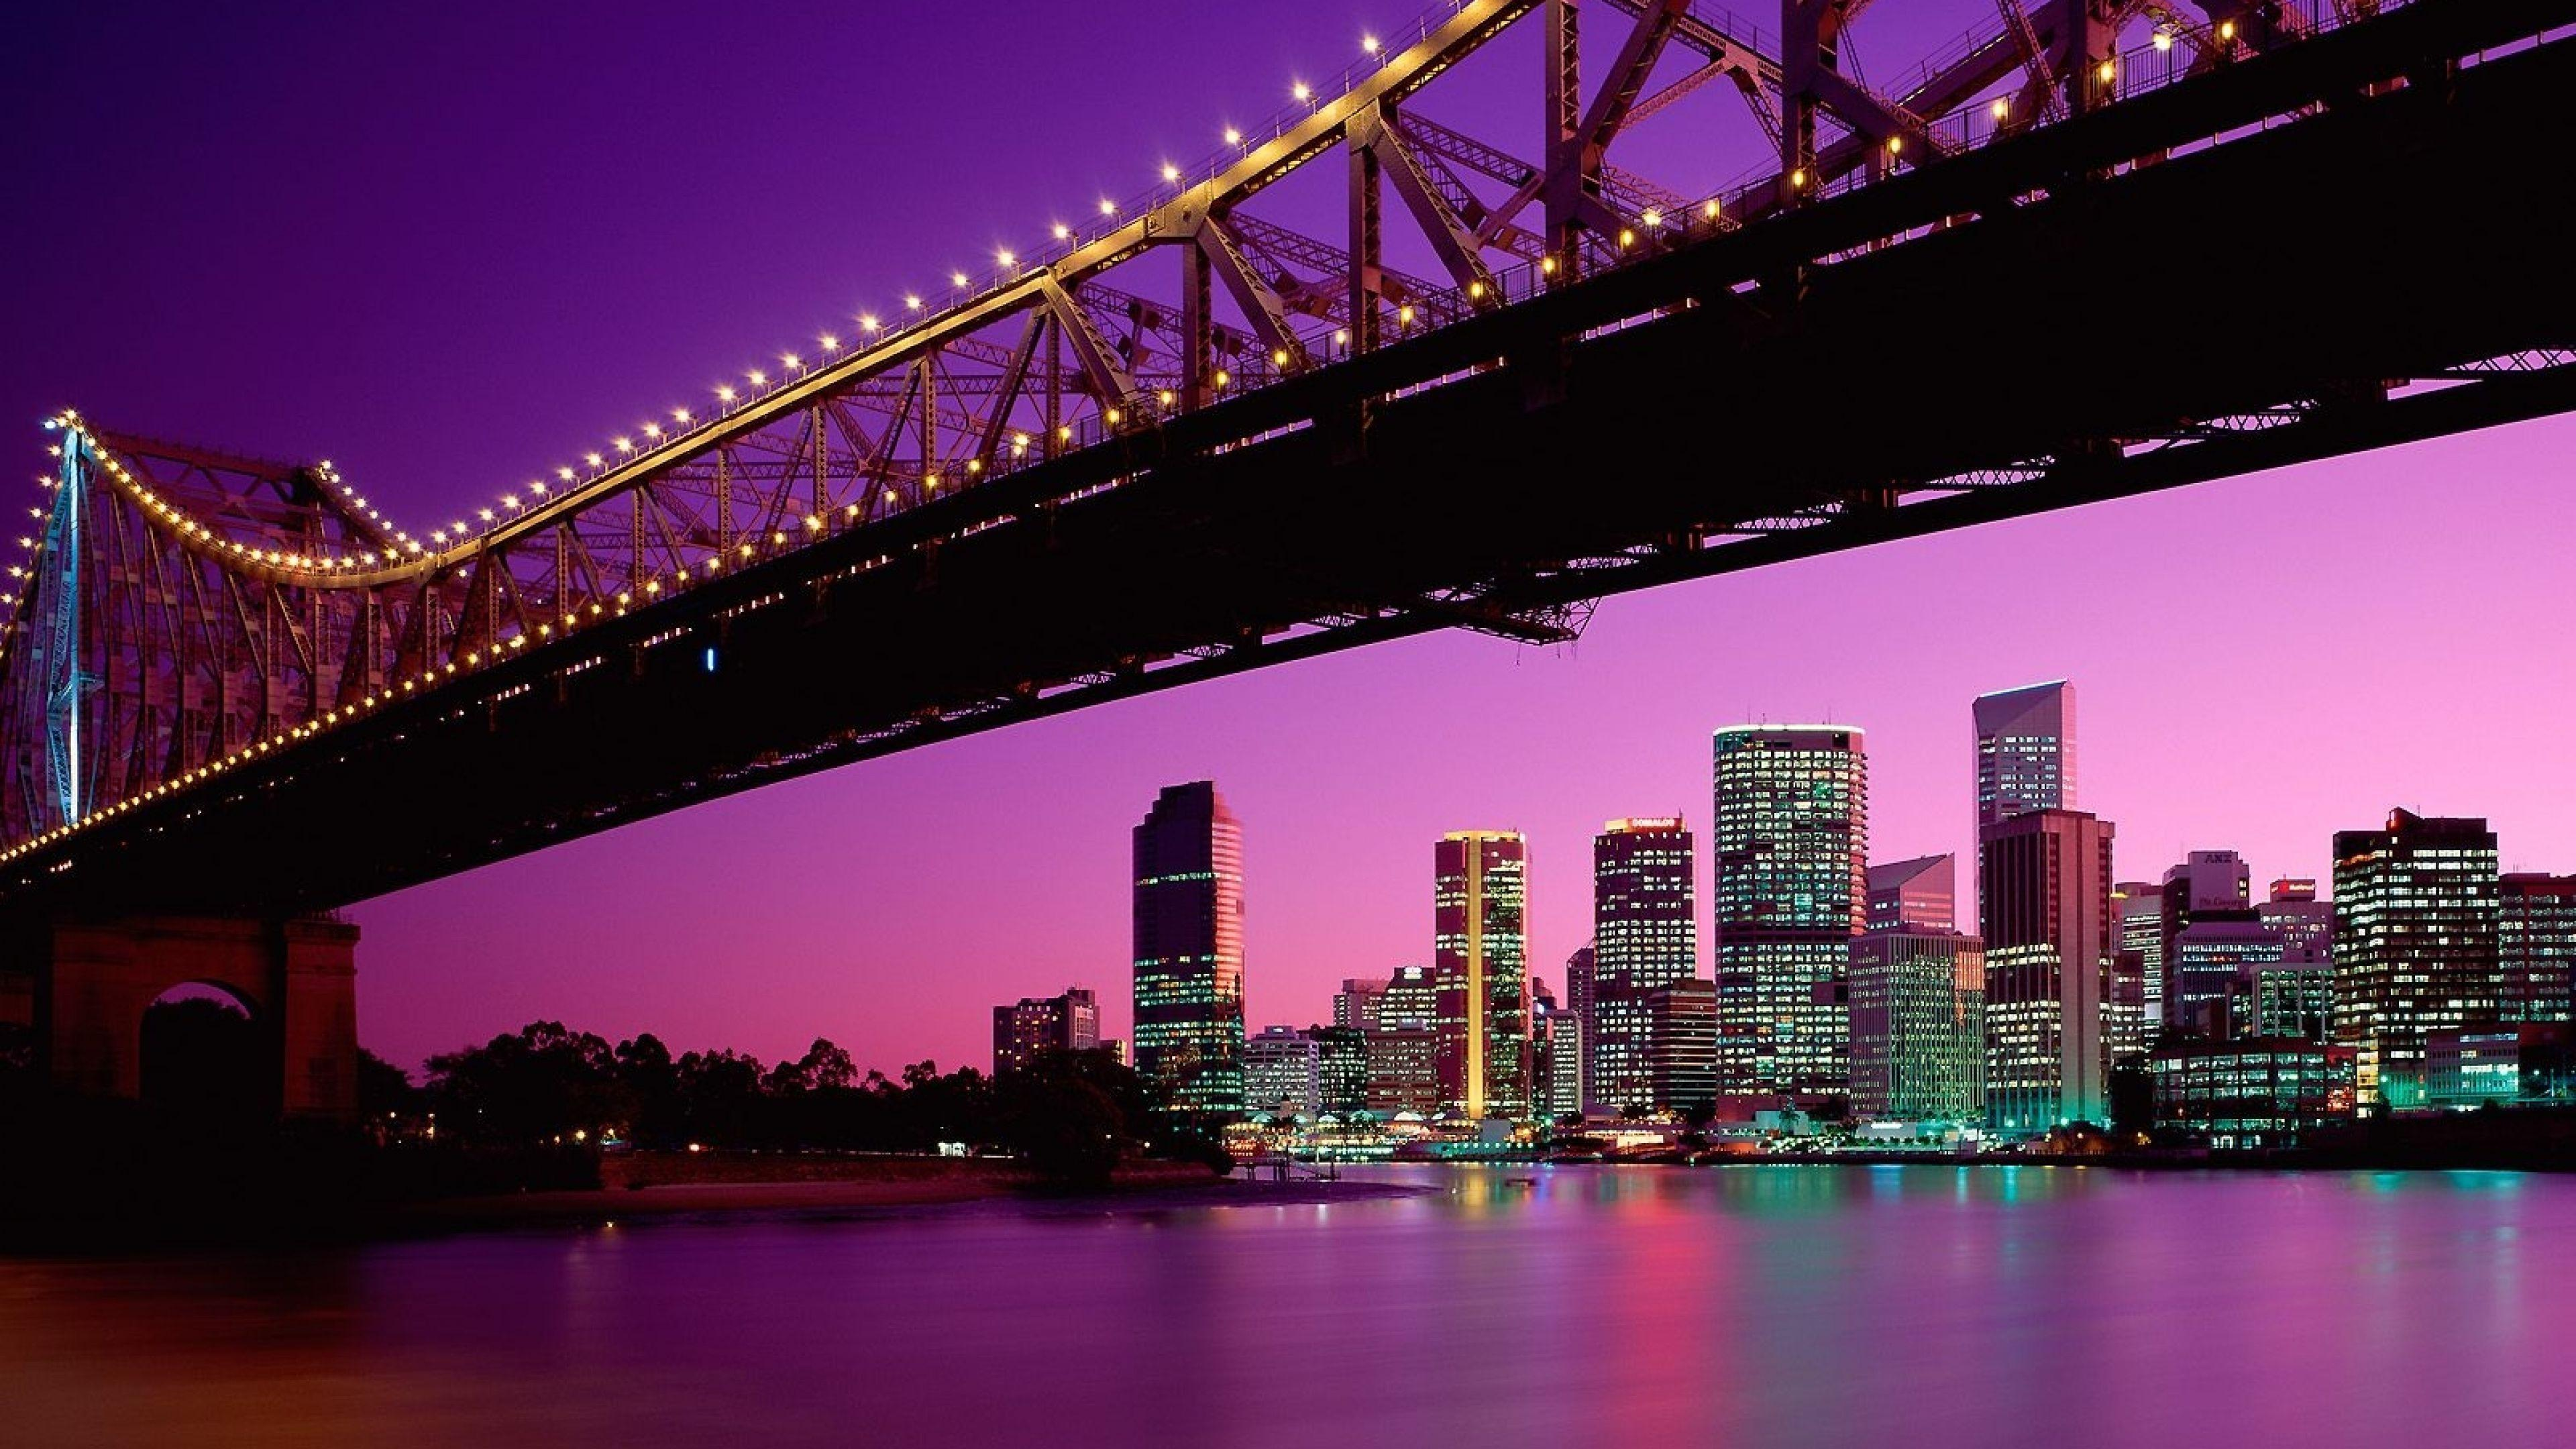 4K Ultra HD Brisbane Wallpapers HD, Desktop Backgrounds 3840x2160 ...